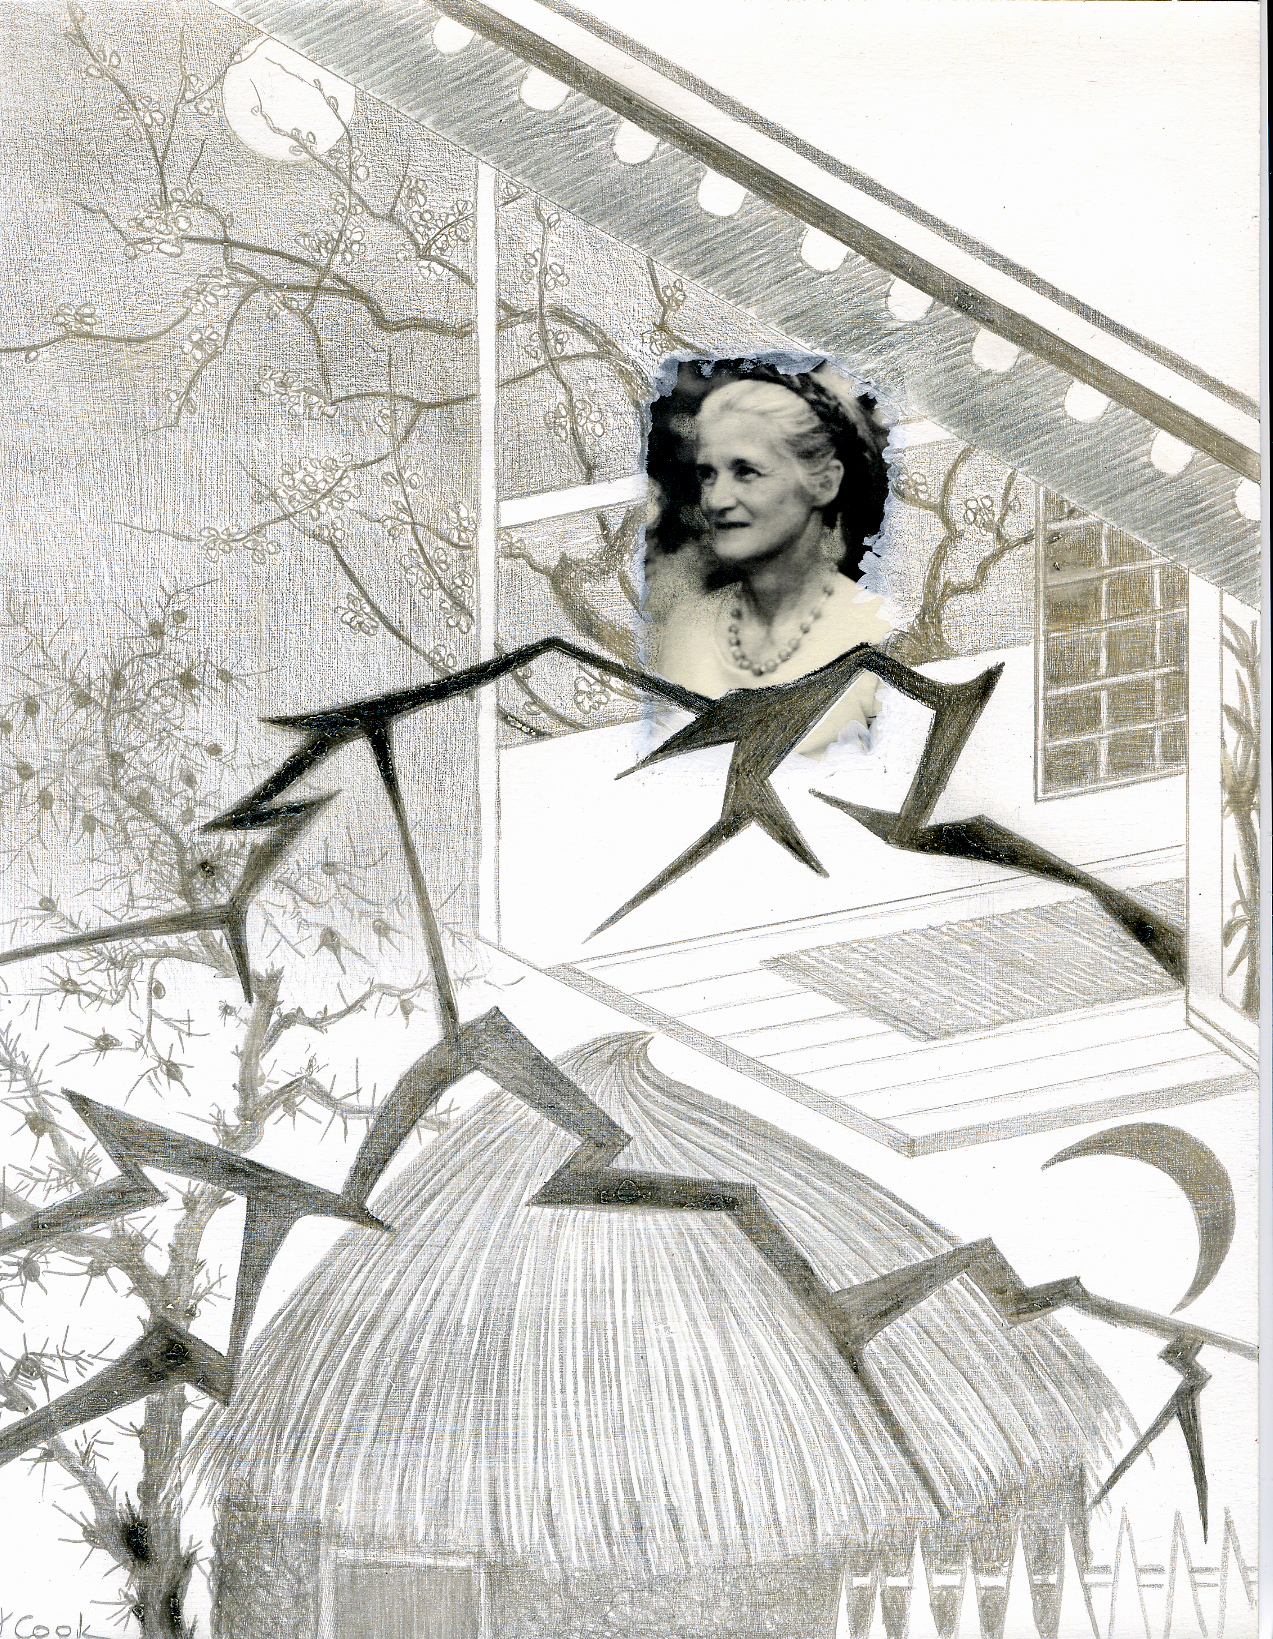 Klotho Series 3 - Ethel Patricia Wright (my mother) - Yokohama earthquake to Africa, silverpoint, Jeannine Cook artist